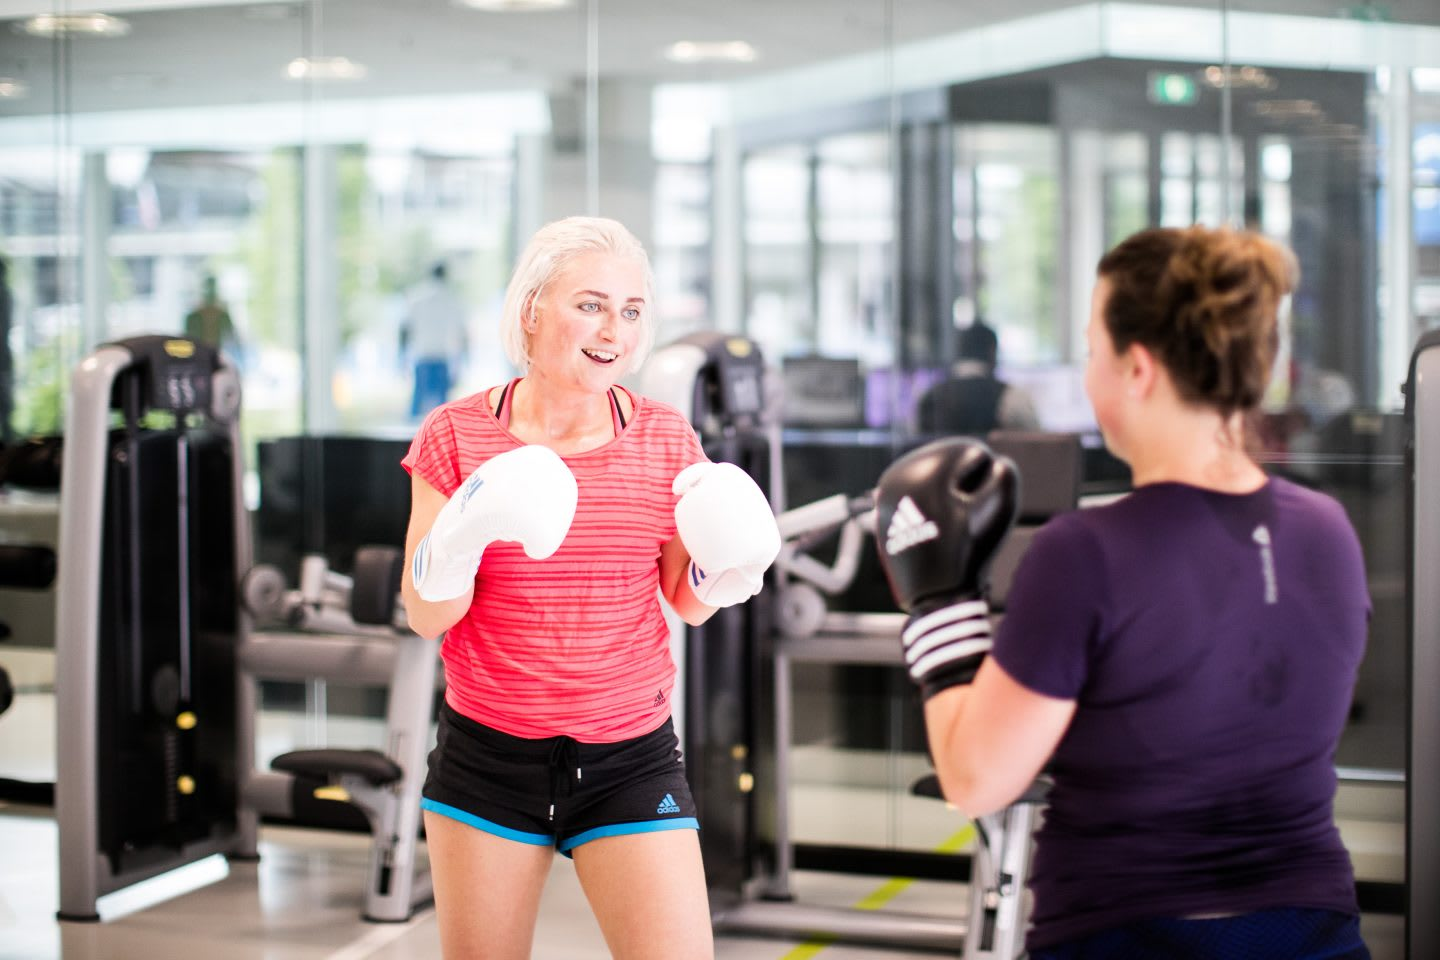 A female adidas employee enjoys boxing in a gym with a colleague. Boxing, Motivation, Confidence.